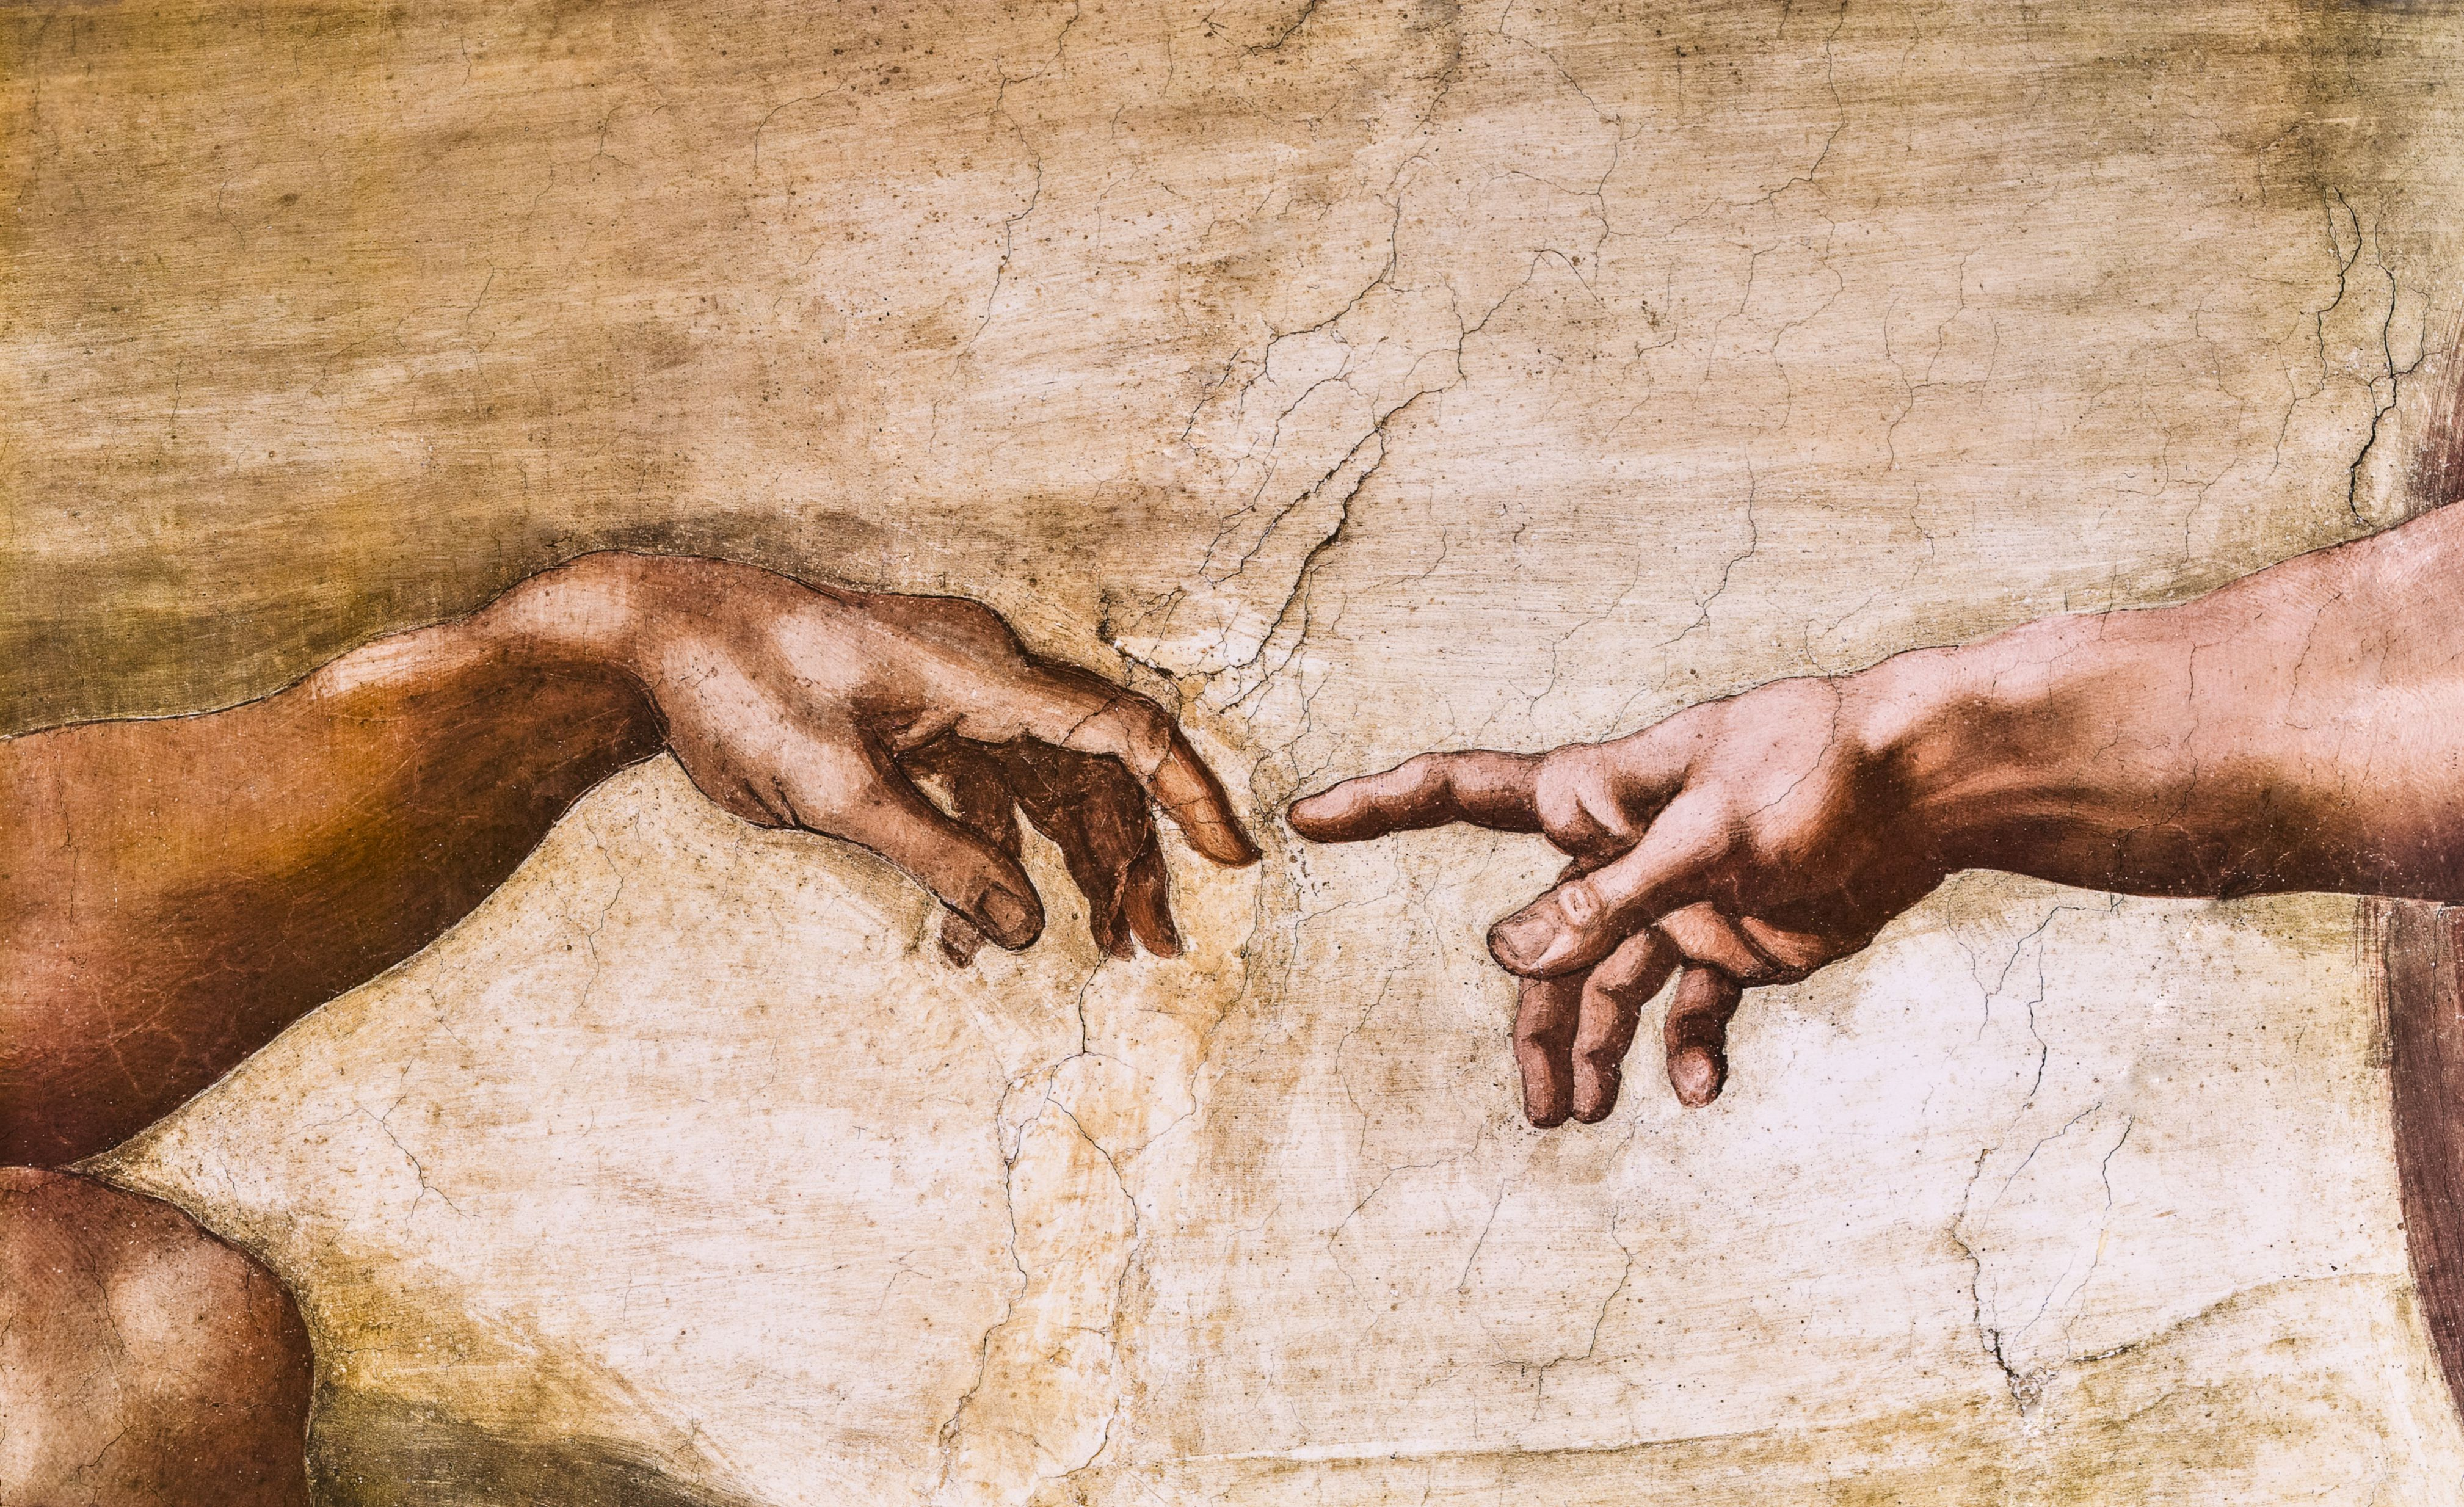 michelangelo buonartti essay Unlike most editing & proofreading services, we edit for everything: grammar, spelling, punctuation, idea flow, sentence structure, & more get started now.